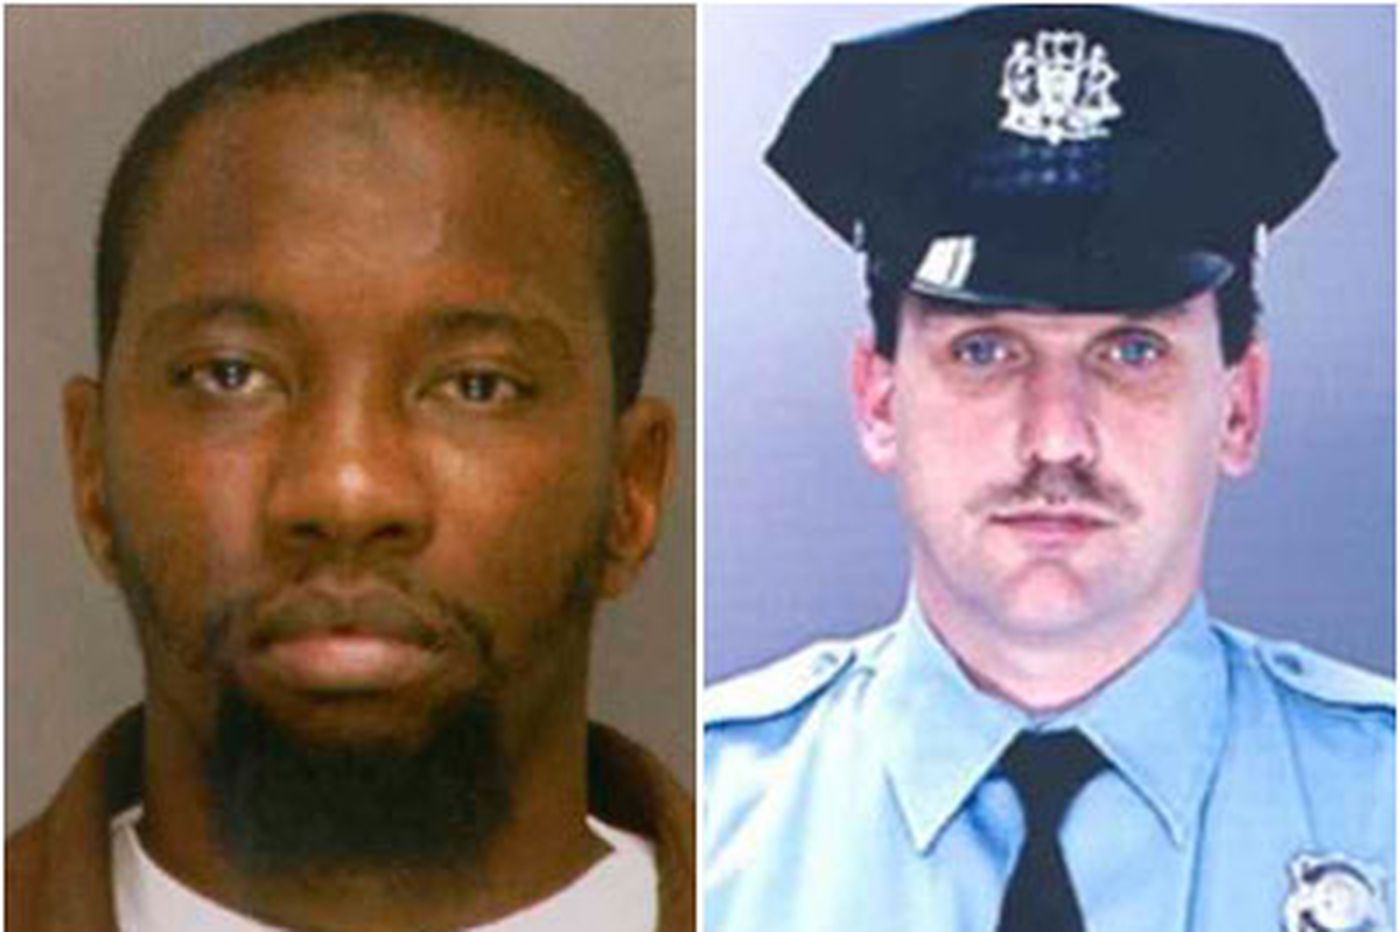 Man accused in officer's death slugs his lawyer